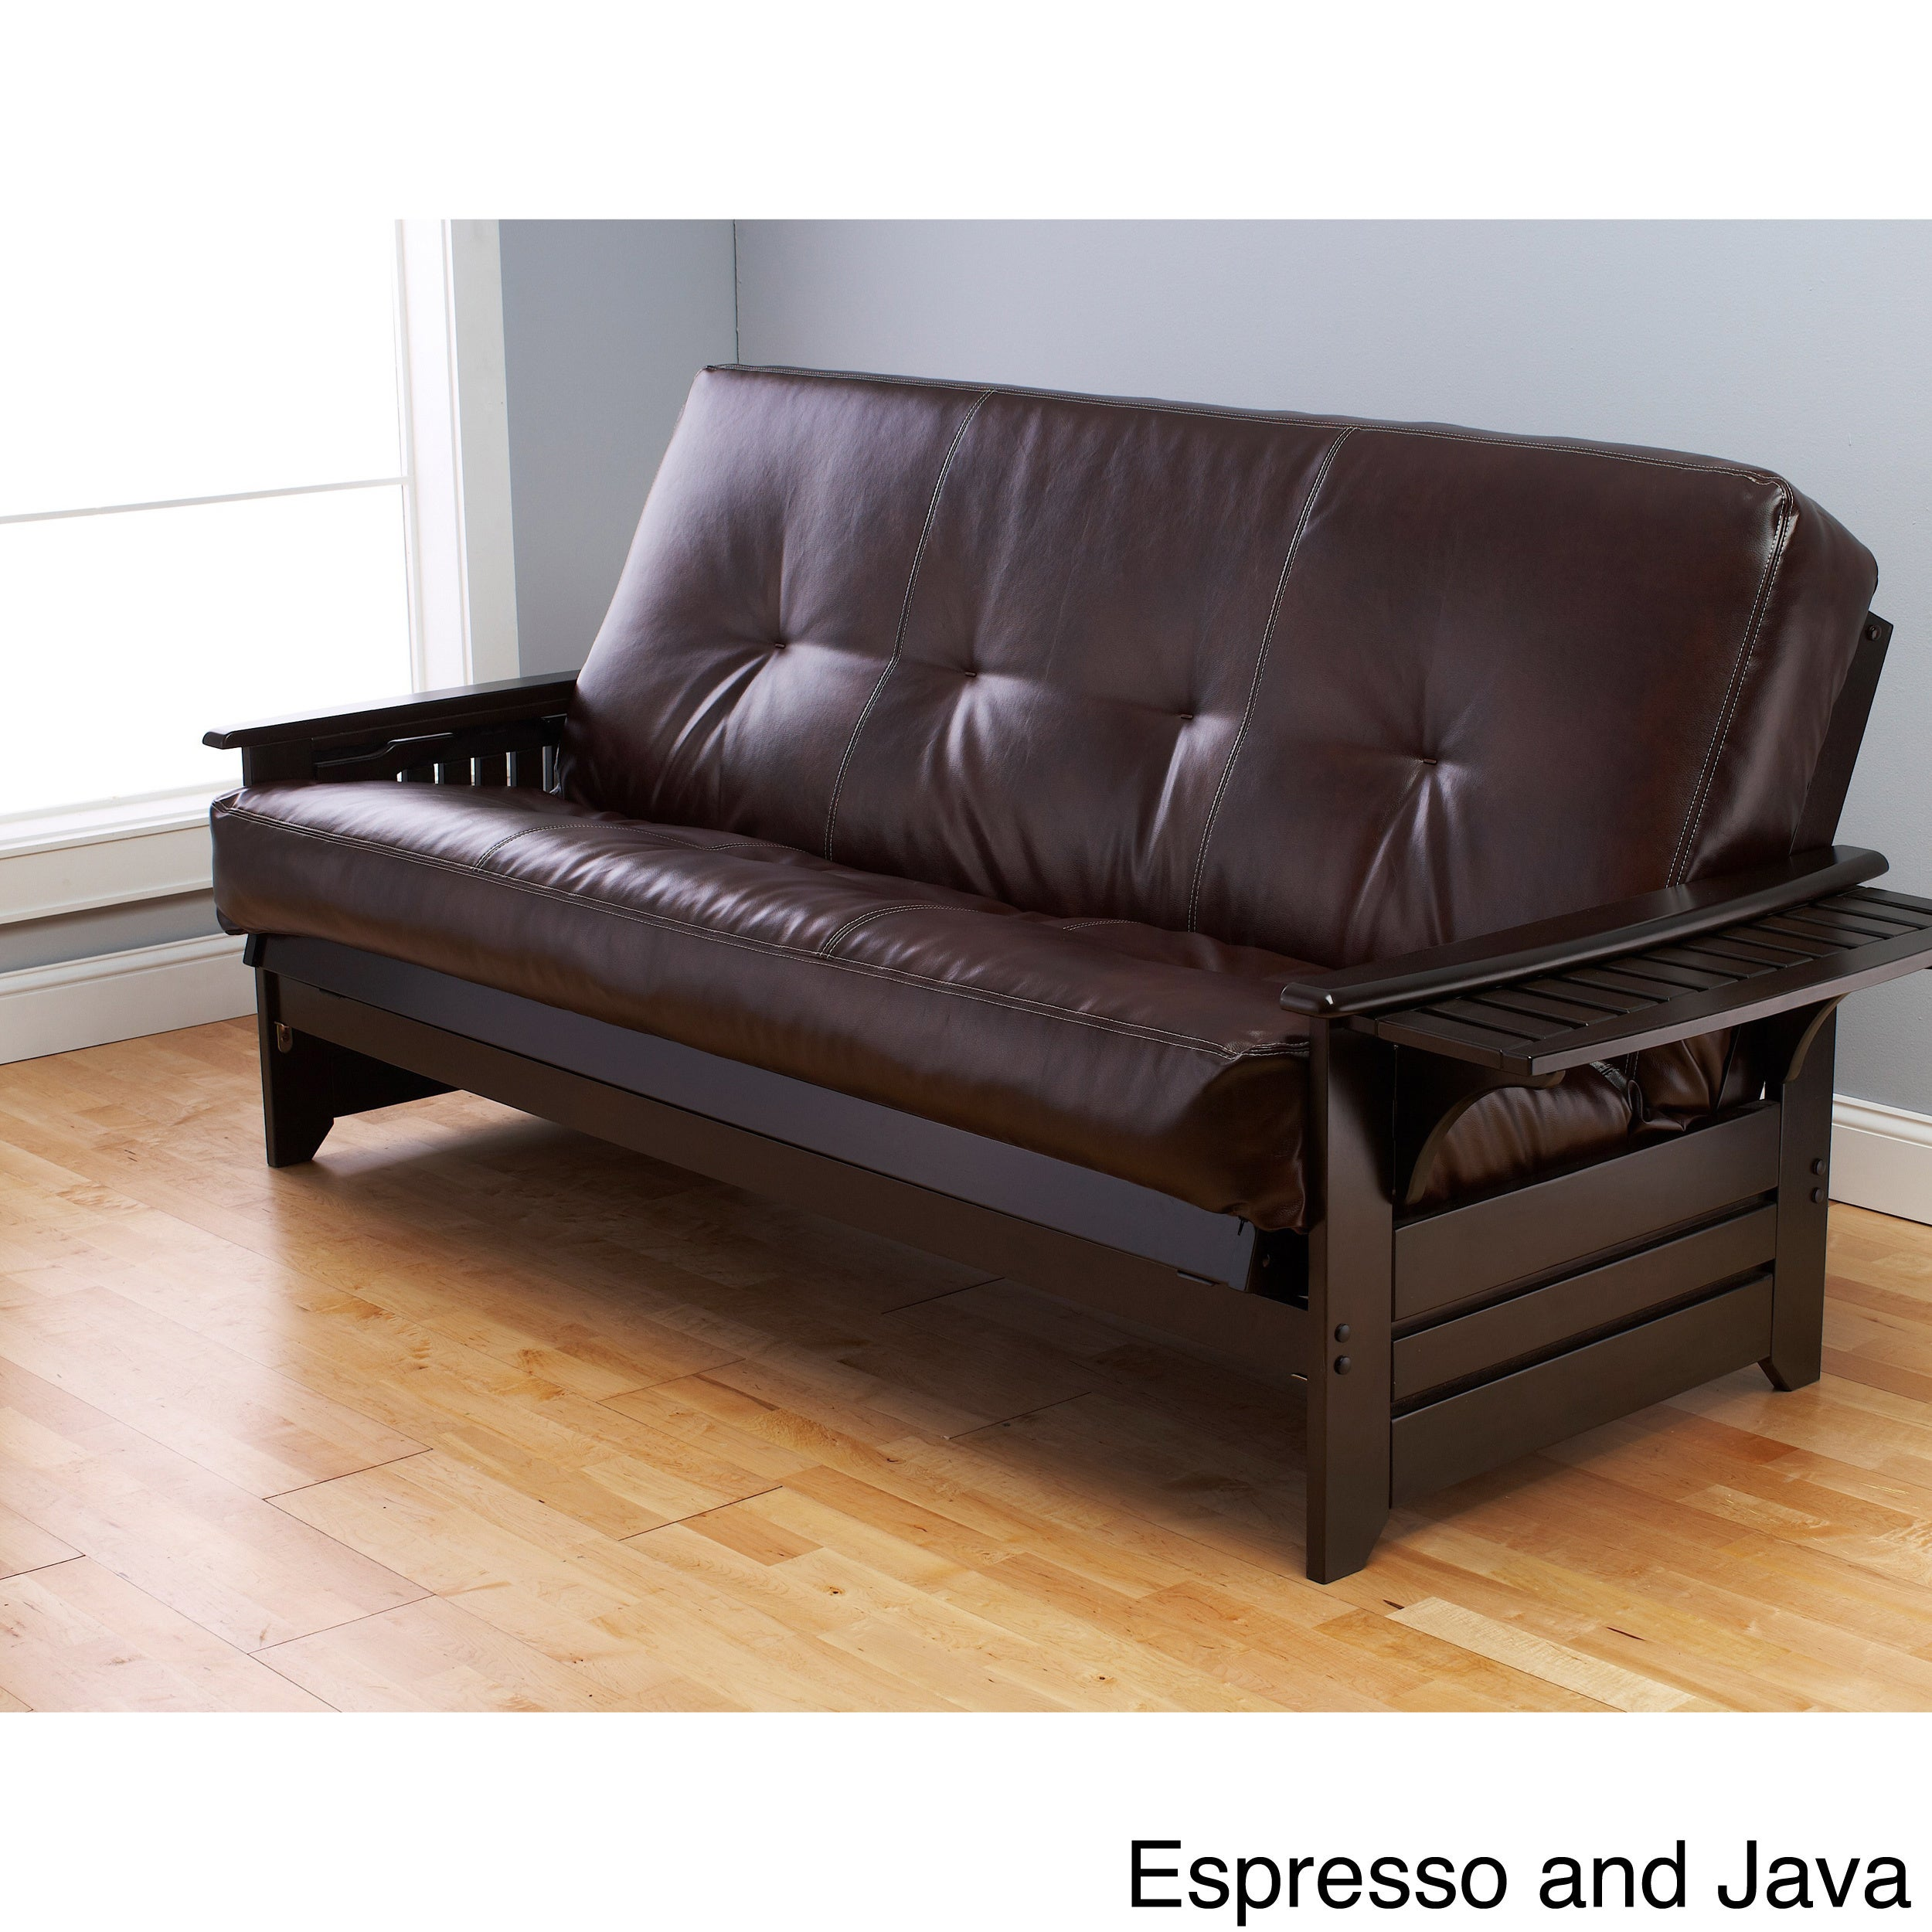 Havenside Home Okaloosa Espresso Full Size Wood Frame With Bonded Leather Innerspring Mattres Free Shipping Today Com 8365989